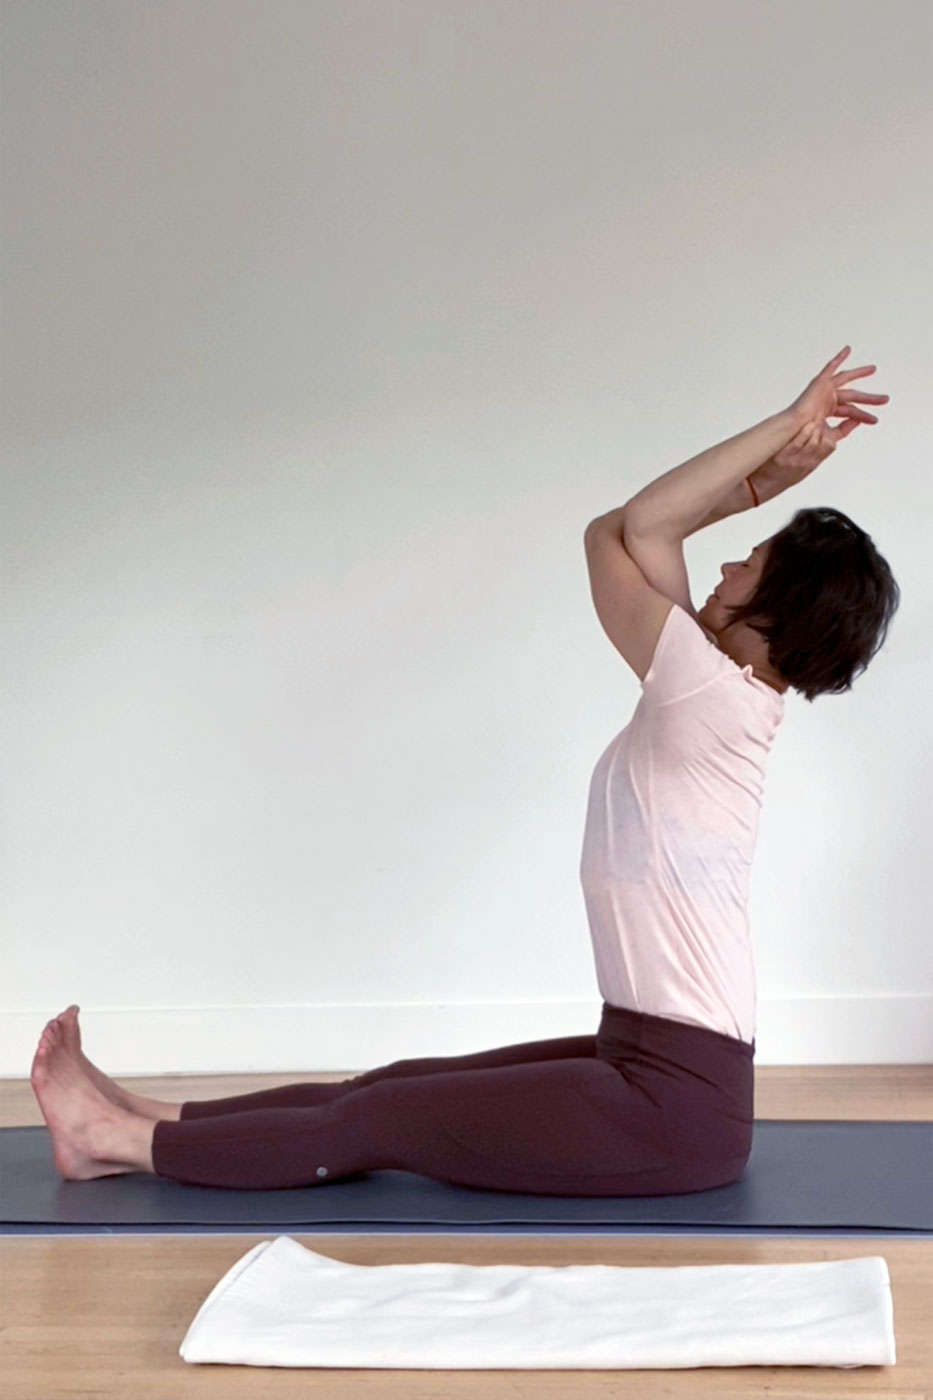 30-Minute Bedtime Yoga Routine For A Restful Sleep